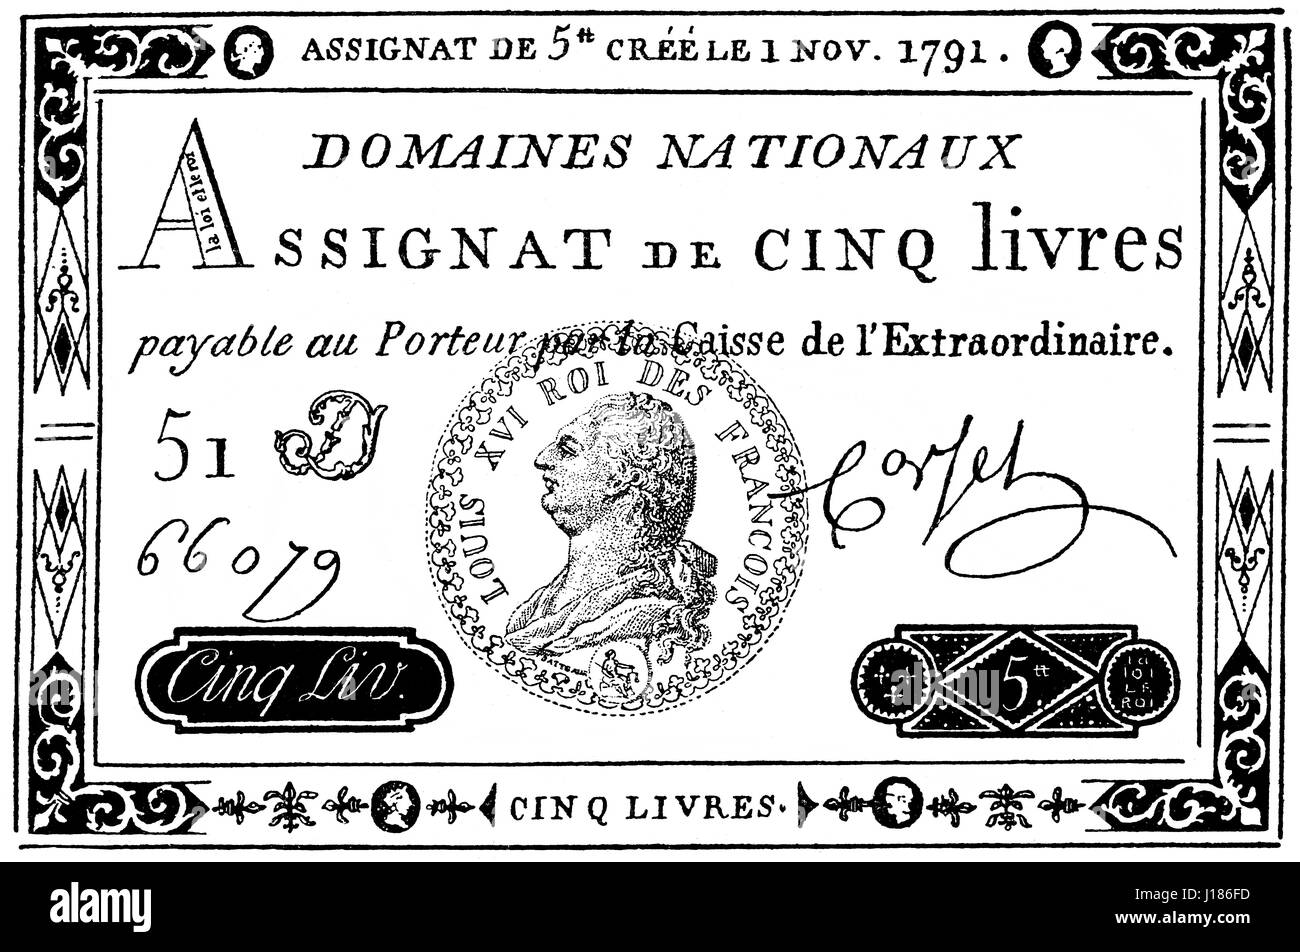 Assignat, monetary instrument used during the time of the French Revolution - Stock Image